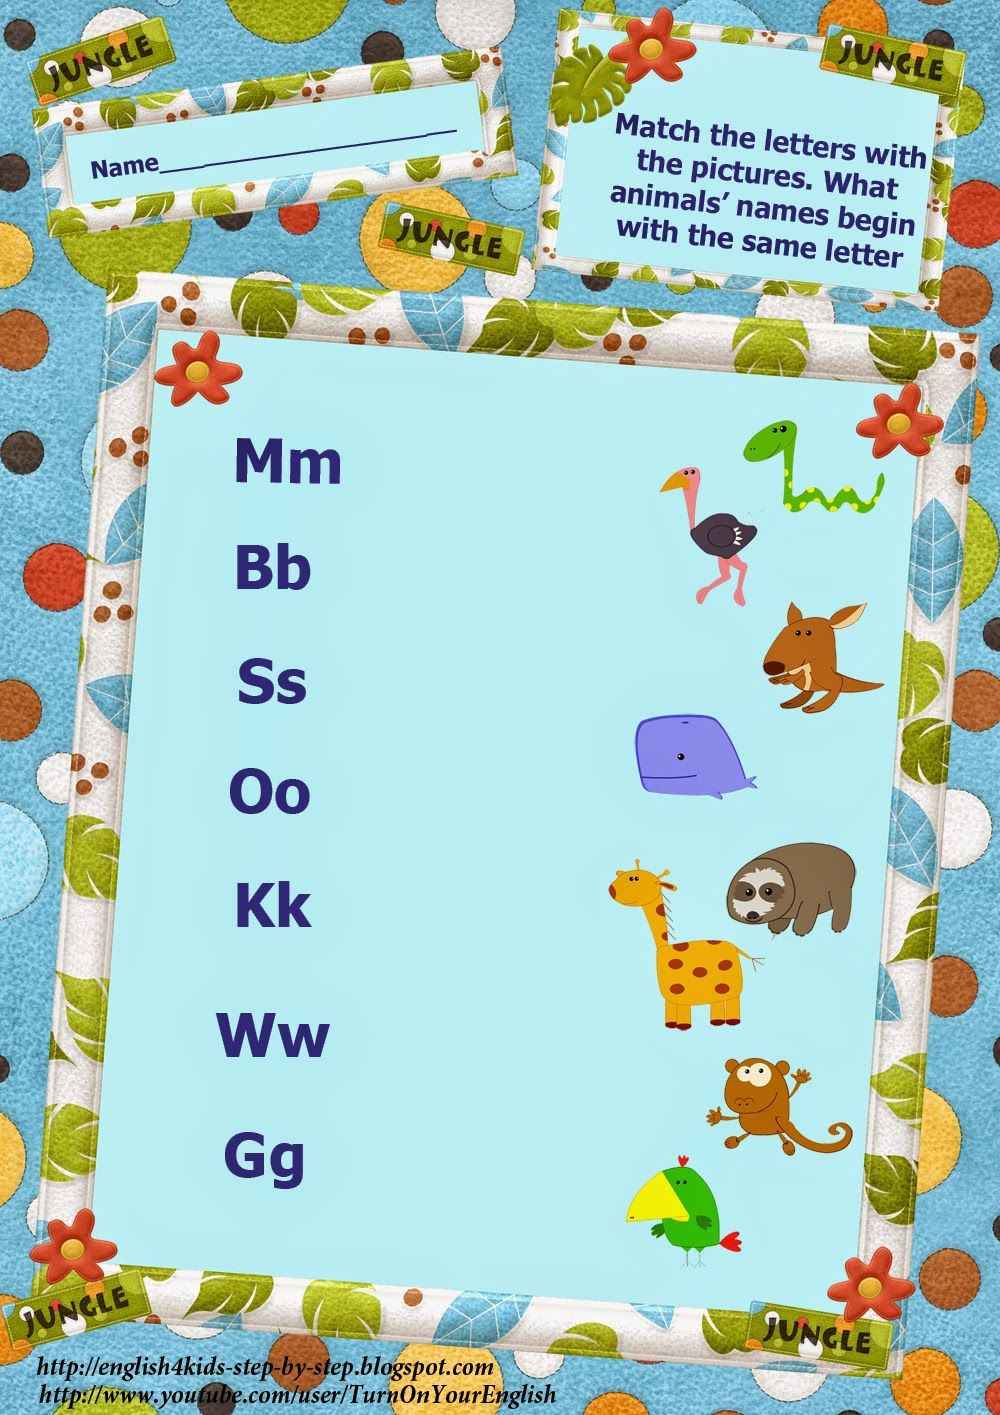 I Can Action Verbs Song For Kids Flashcards And Worksheets Verb Song Action Verbs Kids Songs